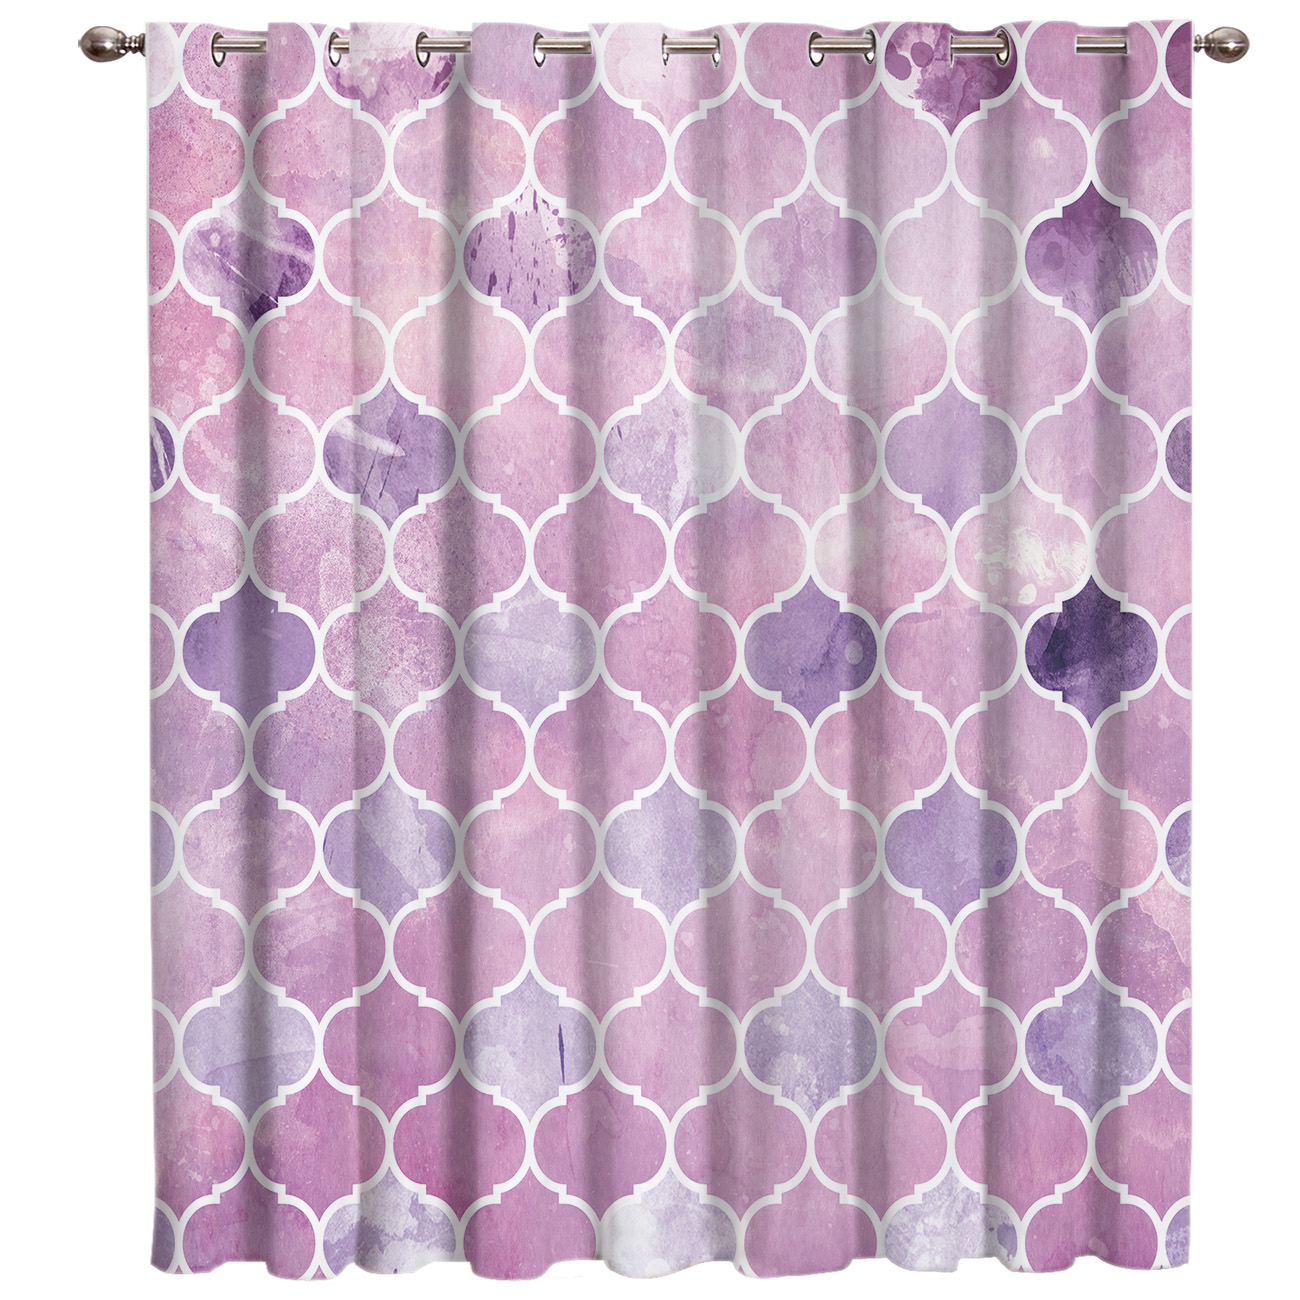 Moroccan Purple Window Treatments Curtains Valance Curtain Rod Fabric Window Treatment Ideas Living Room Home Decor Curtains Aliexpress